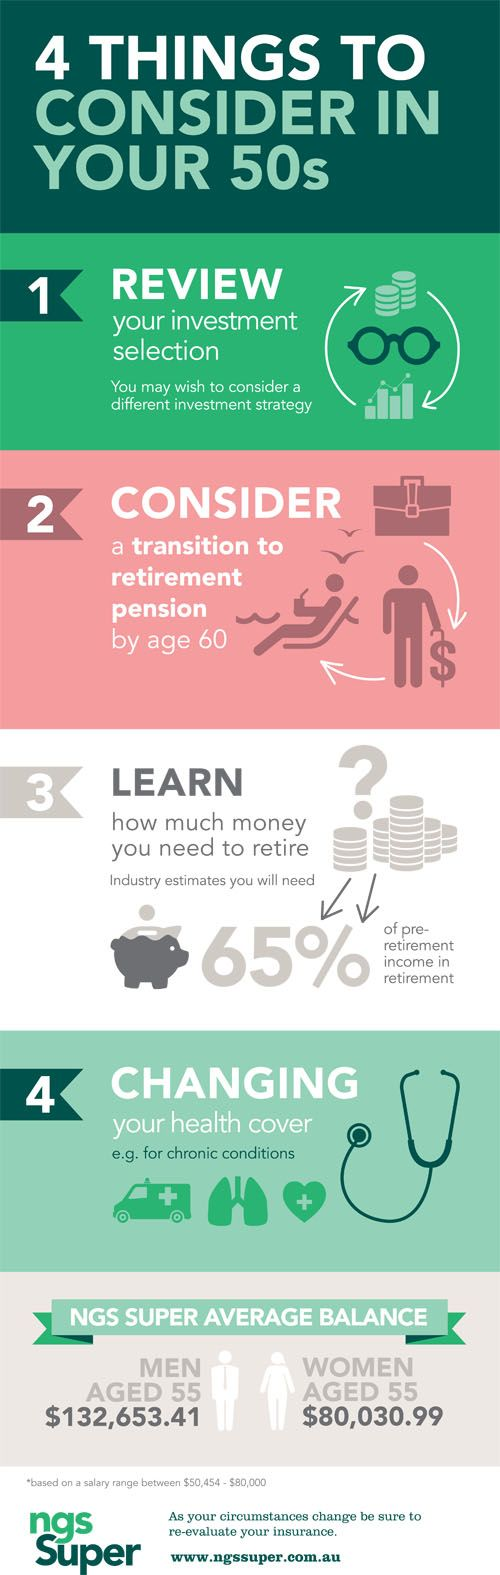 Super tips - 4 things to consider in your 50s. #superannuation #retirement